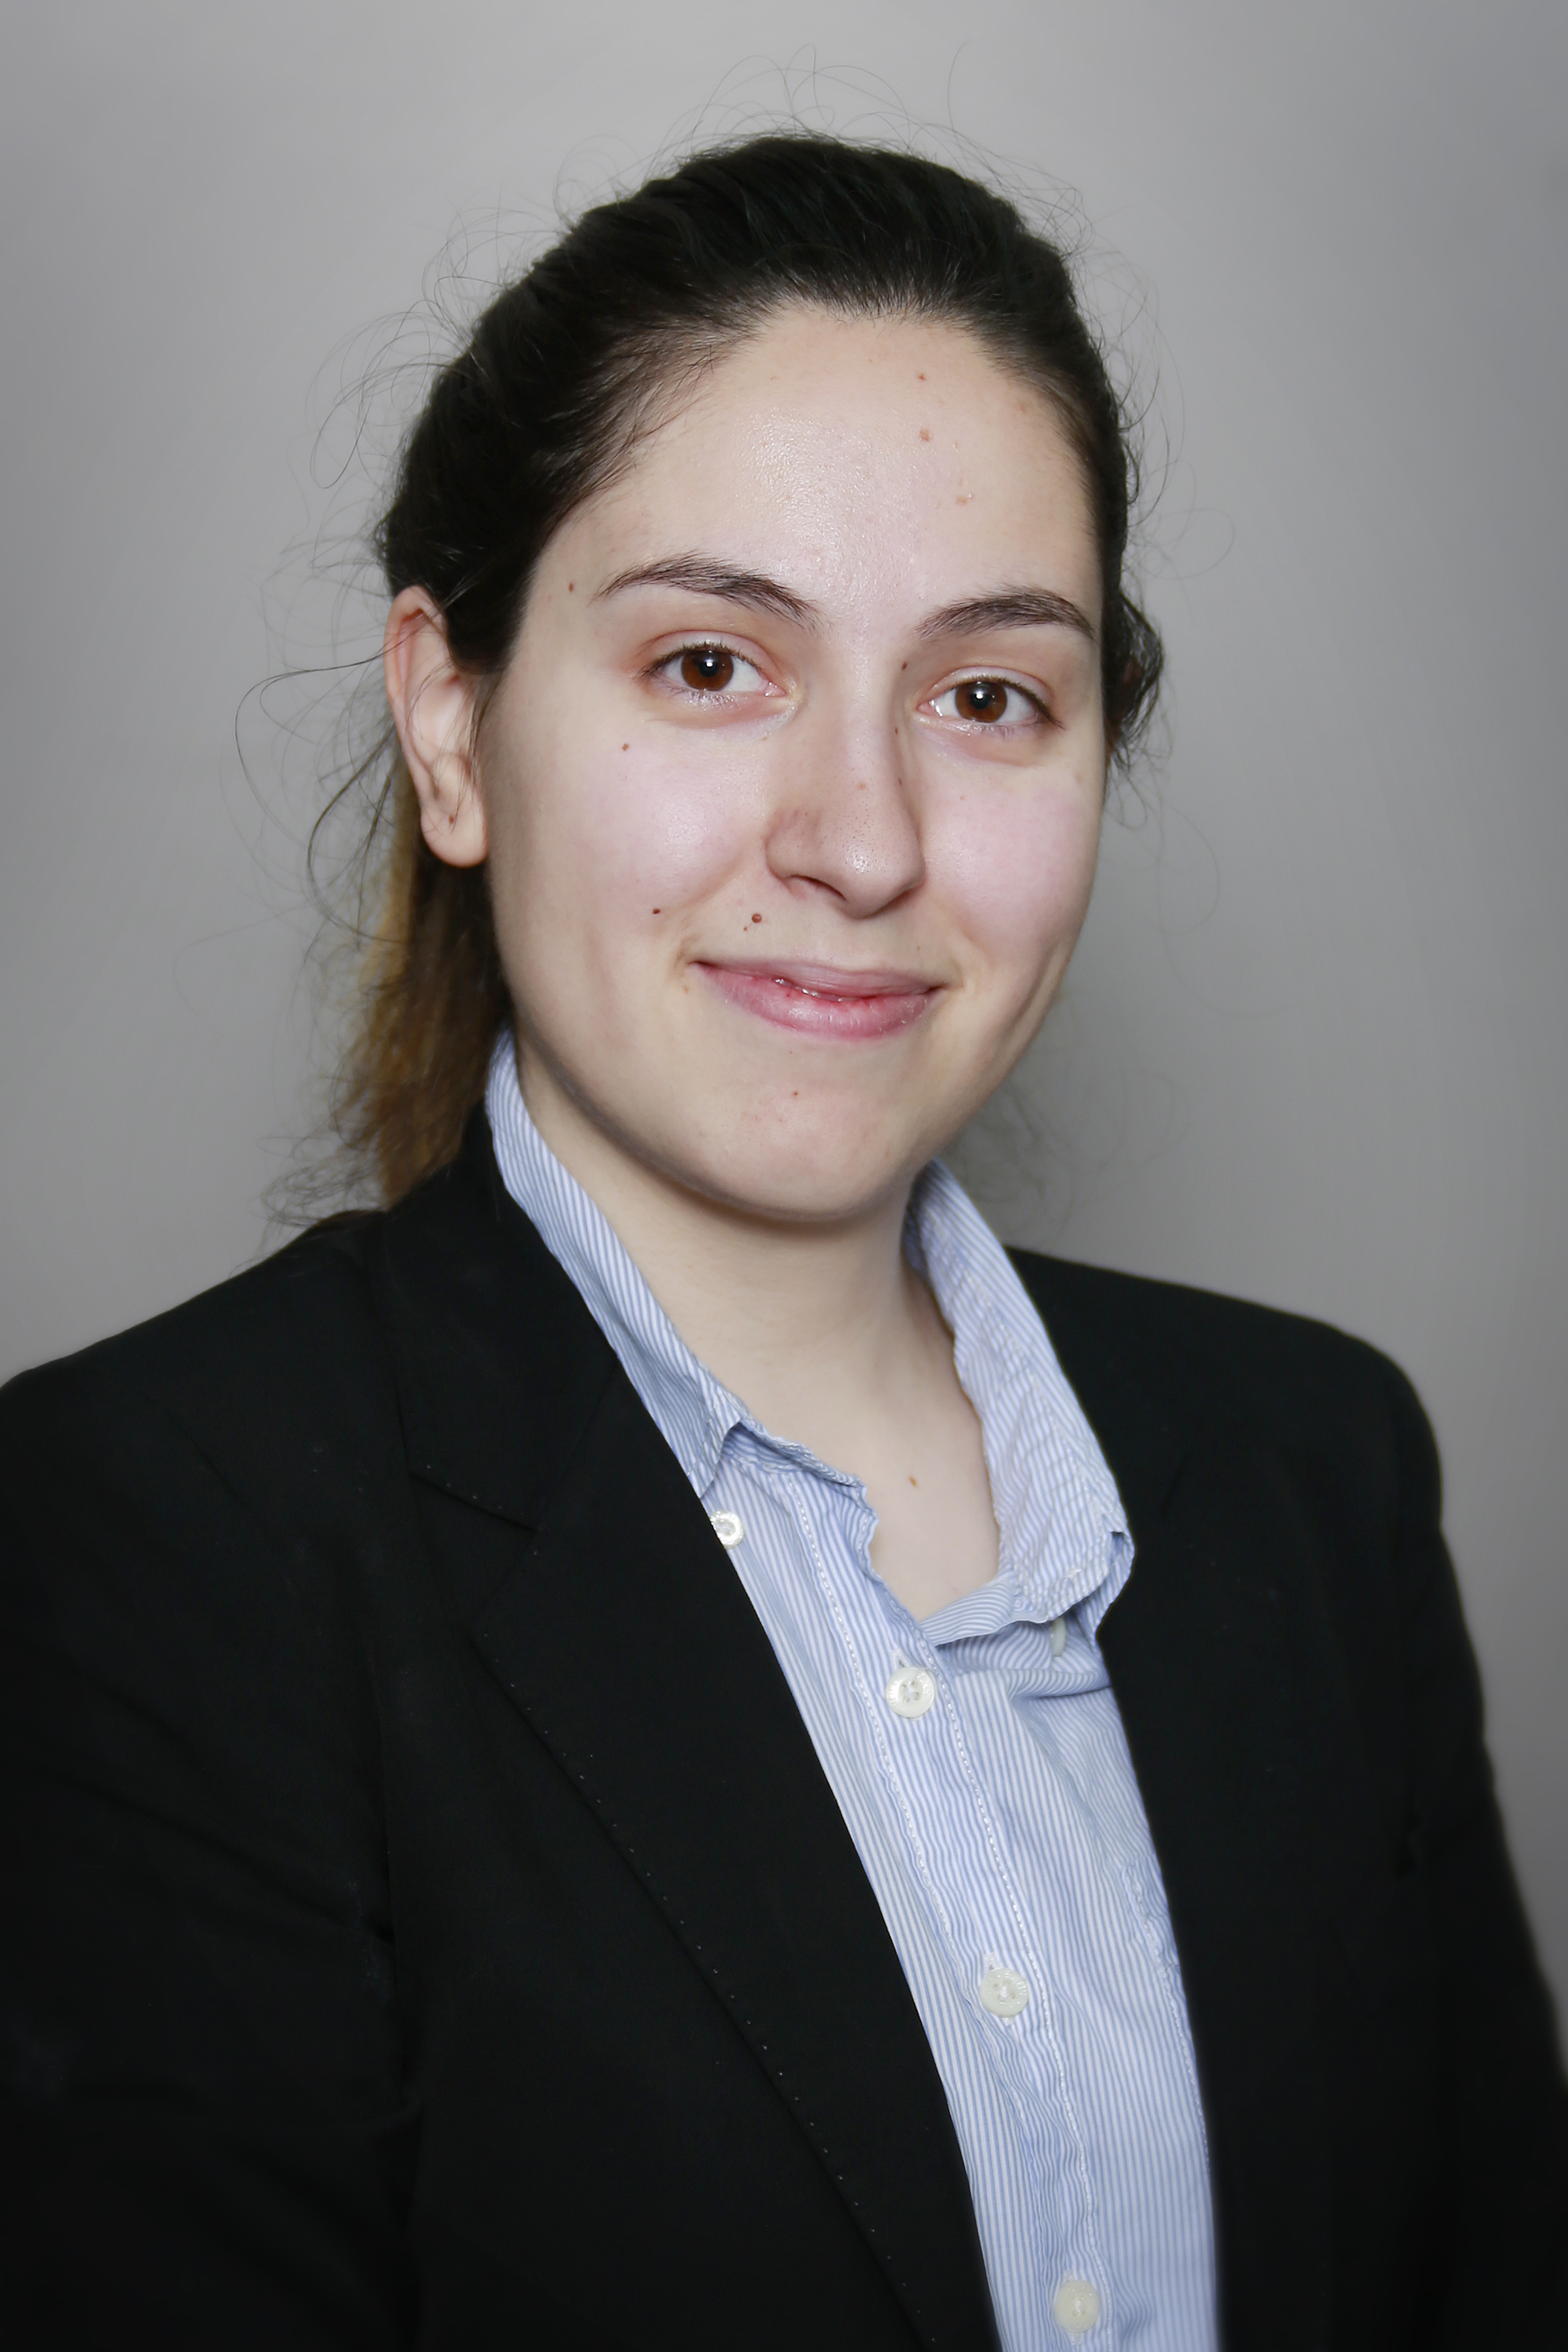 Christina Vitsentzatos is the Office Administrator at Devlin & Co, accountants and business advisers in the Melbourne suburb of South Yarra.